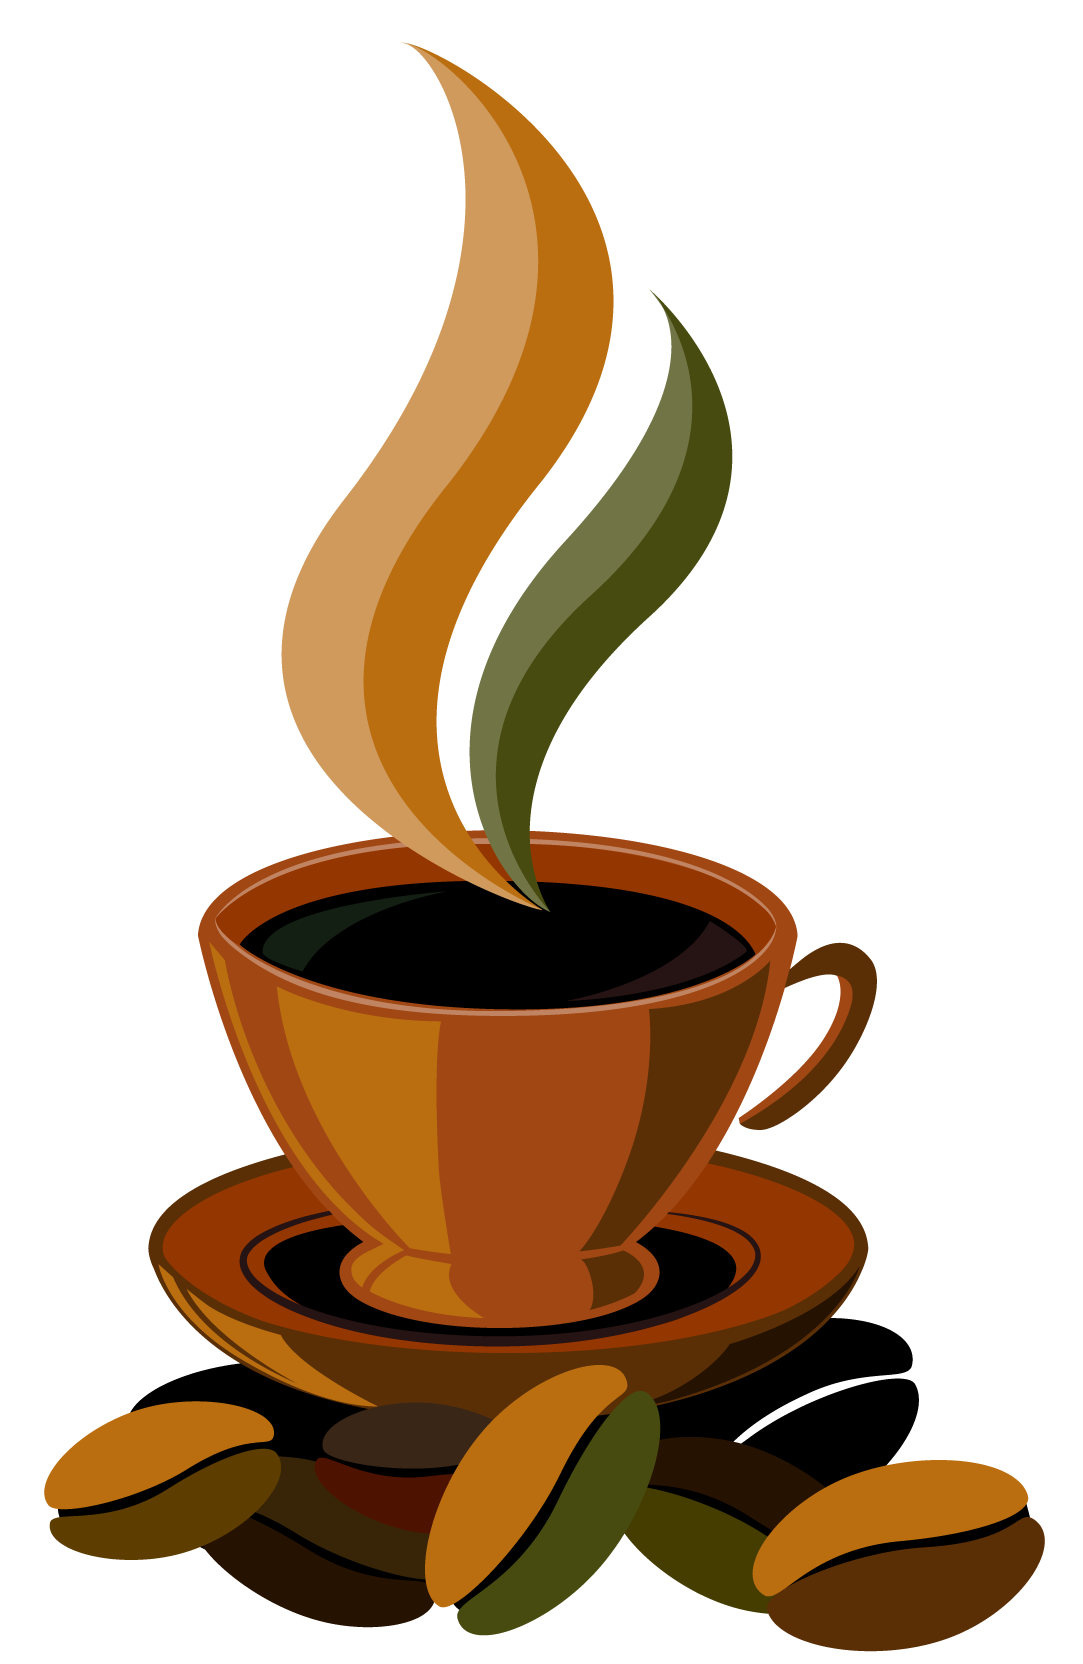 clipart hot coffee - photo #31